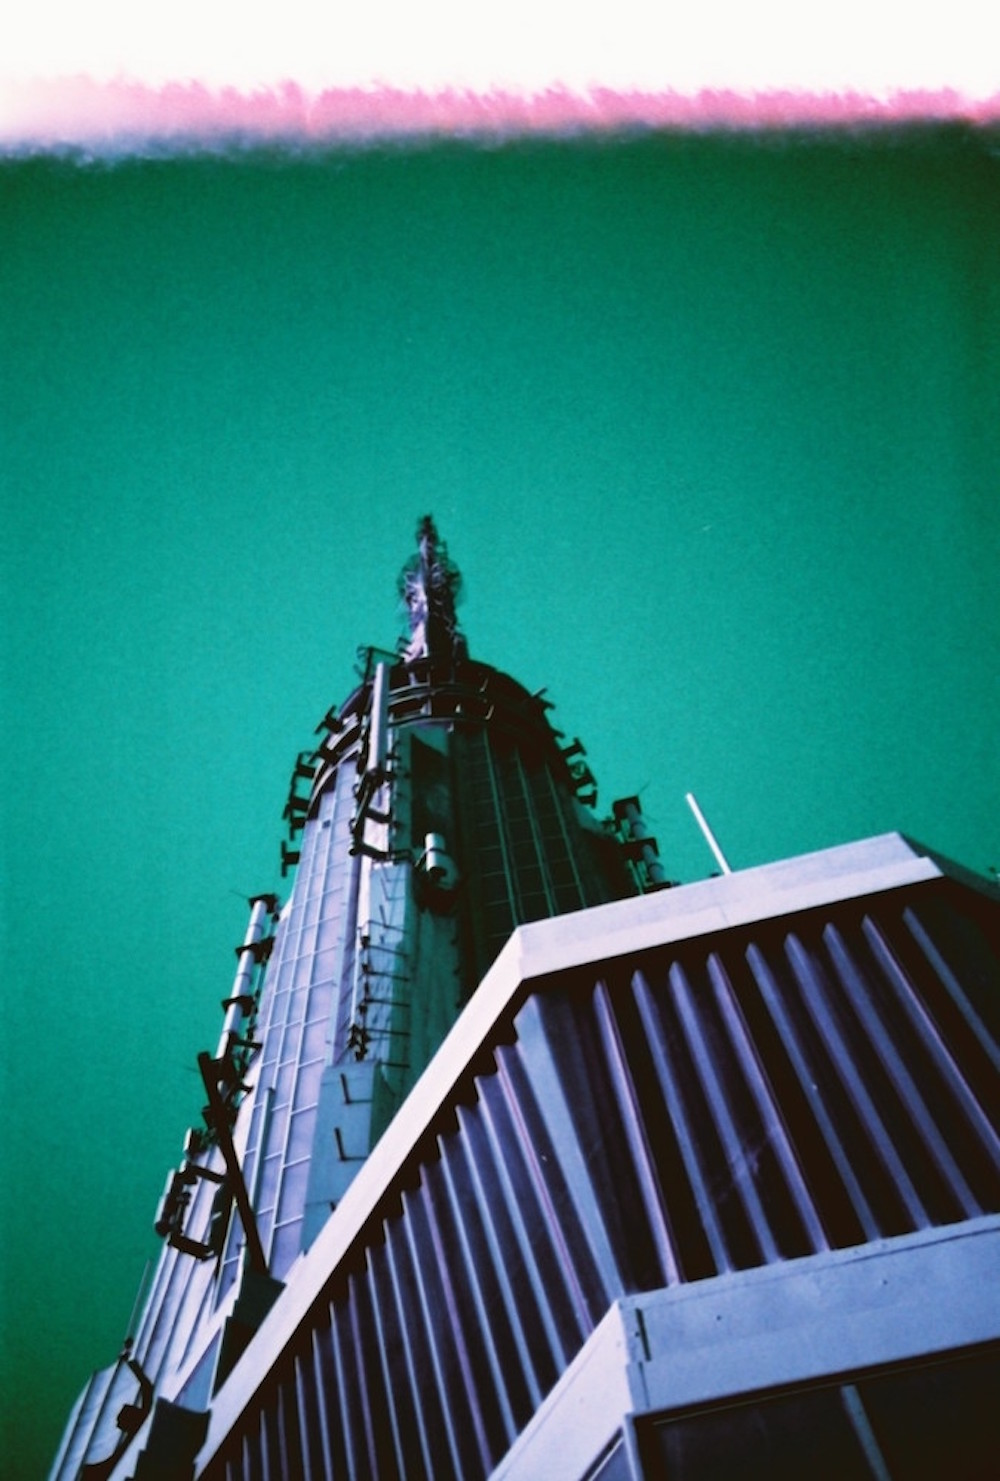 Julian Hand - Photography - Purple Chrome - Lomography - Lomo - LC-A 120 - Emma Tricca - New York City - Music Video - St. Peter